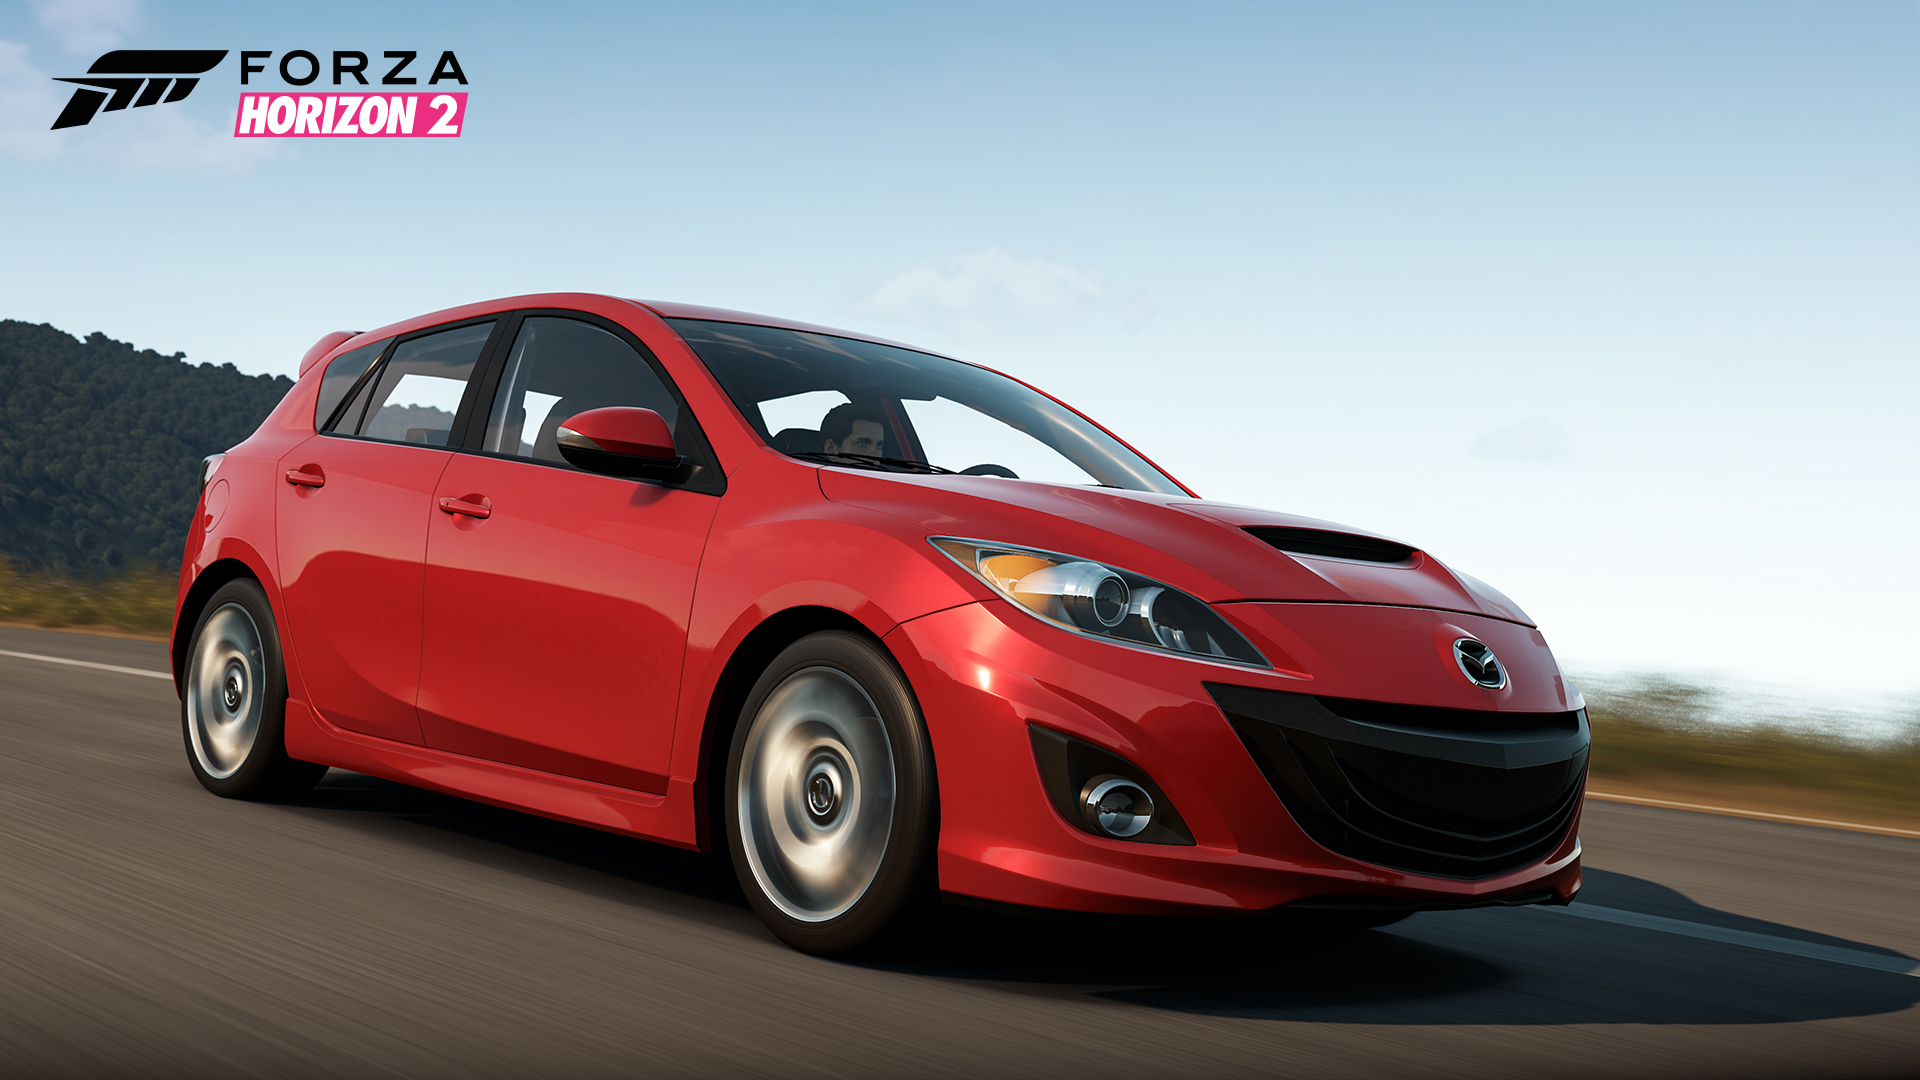 Video For Forza Horizon 2 G-Shock Car Pack Now Available